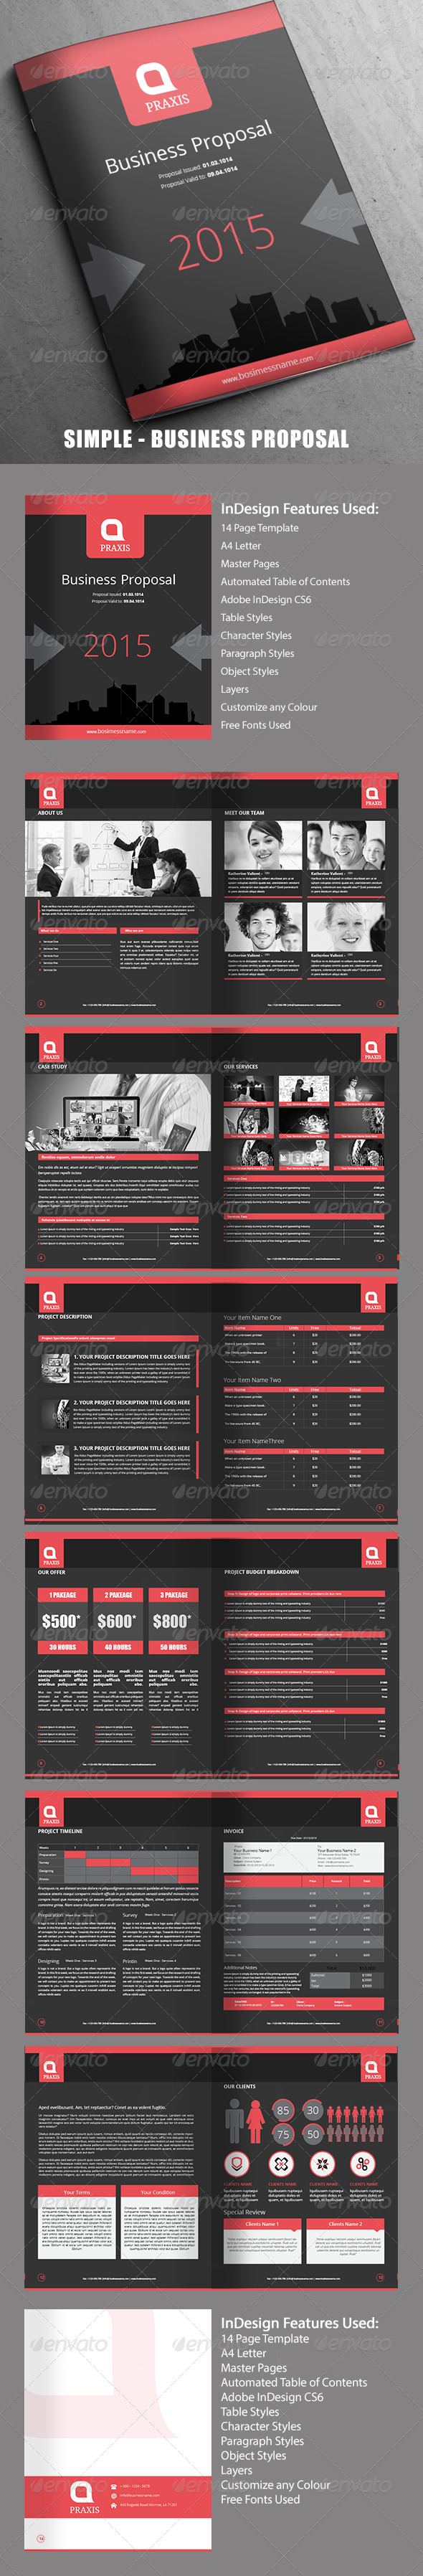 GraphicRiver Simple Business Proposal 14 Pages 7816824